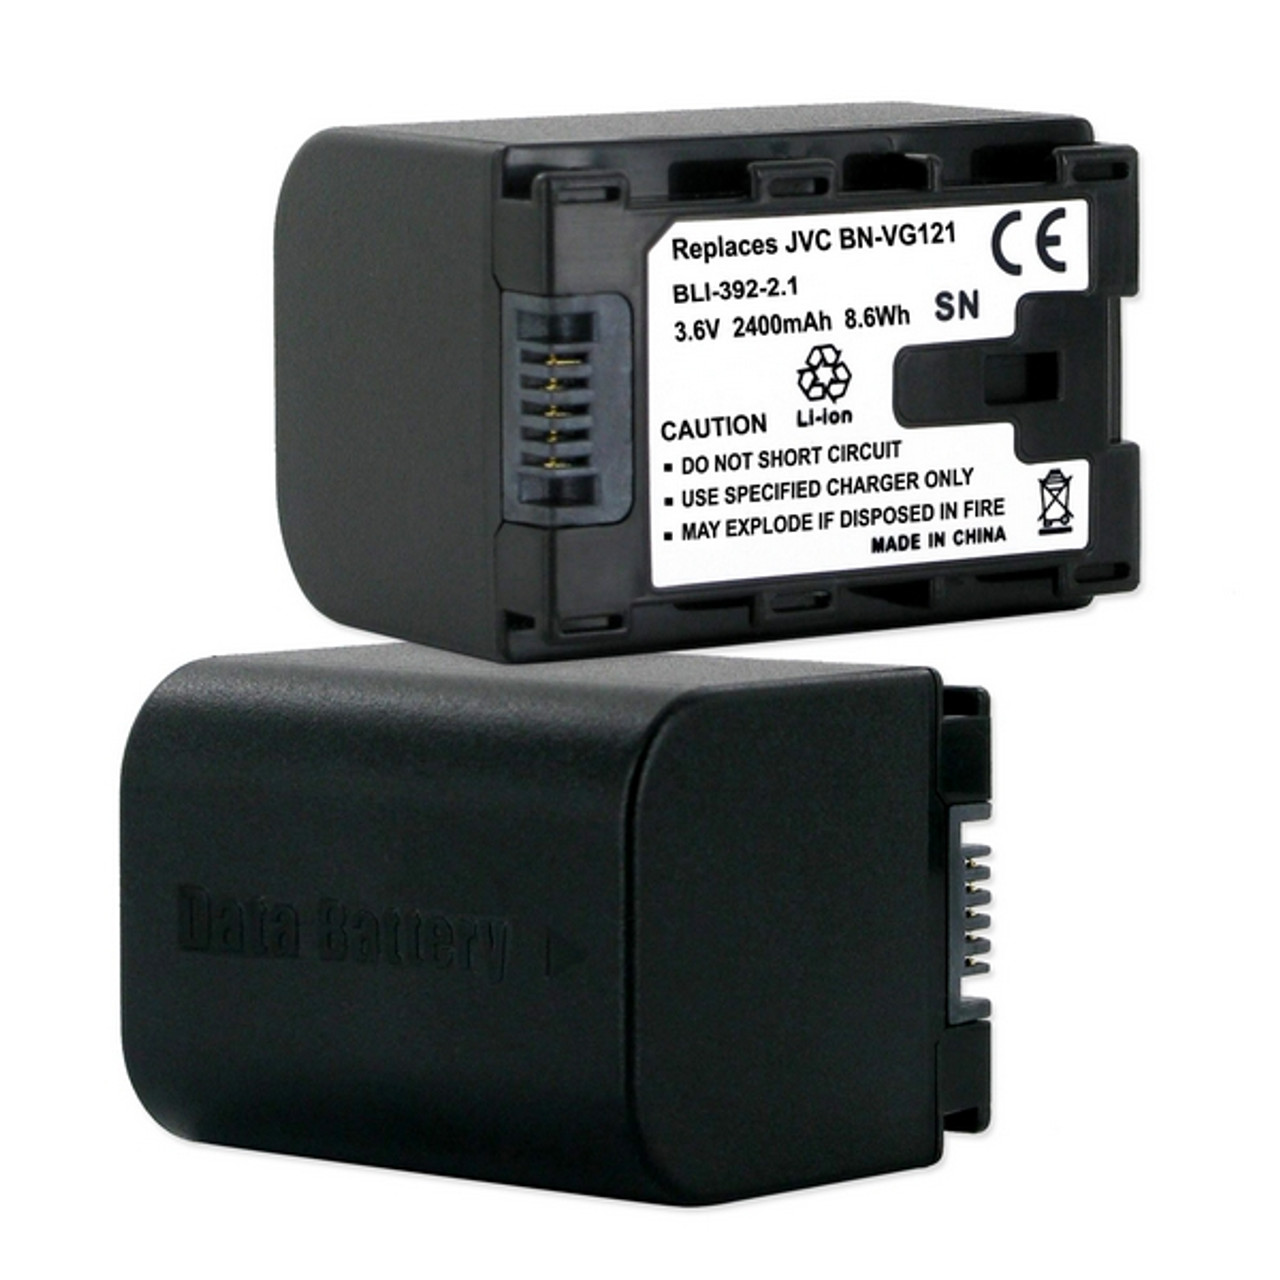 JVC GZ-HM40 Digital Battery BB-144929 - batterykings.com